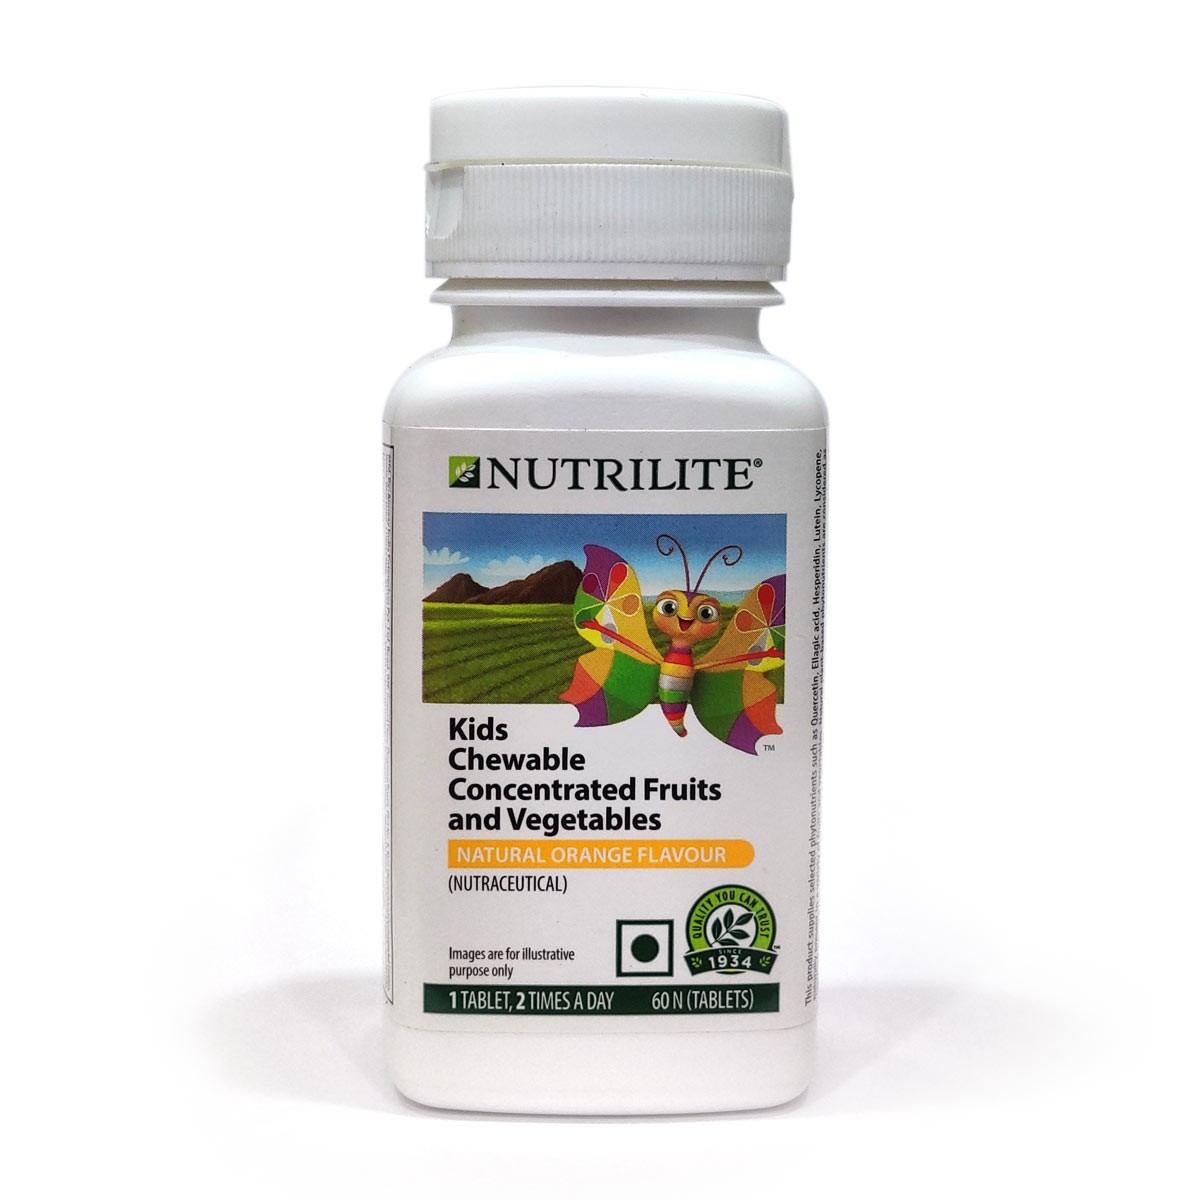 Amway Nutrilite Kids Chewable Concentrated Fruits and Vegetables